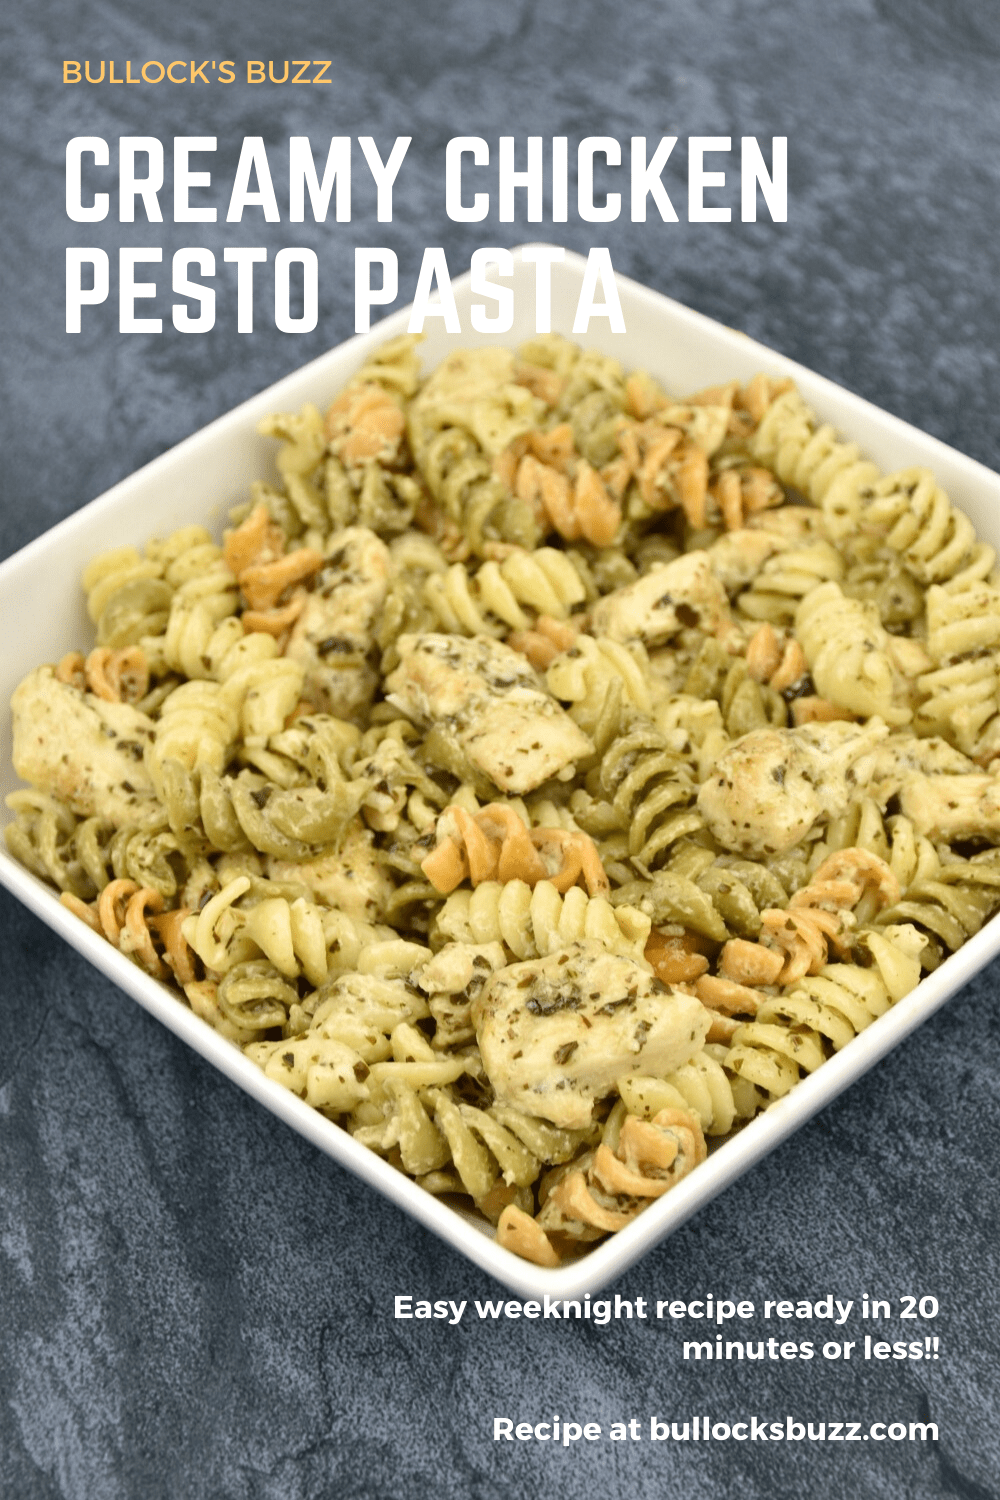 Tender chicken and rotini pasta are smothered in a delectable pesto sauce and topped with Parmesan cheese in this quick and easy Creamy Chicken Pesto Pasta recipe.